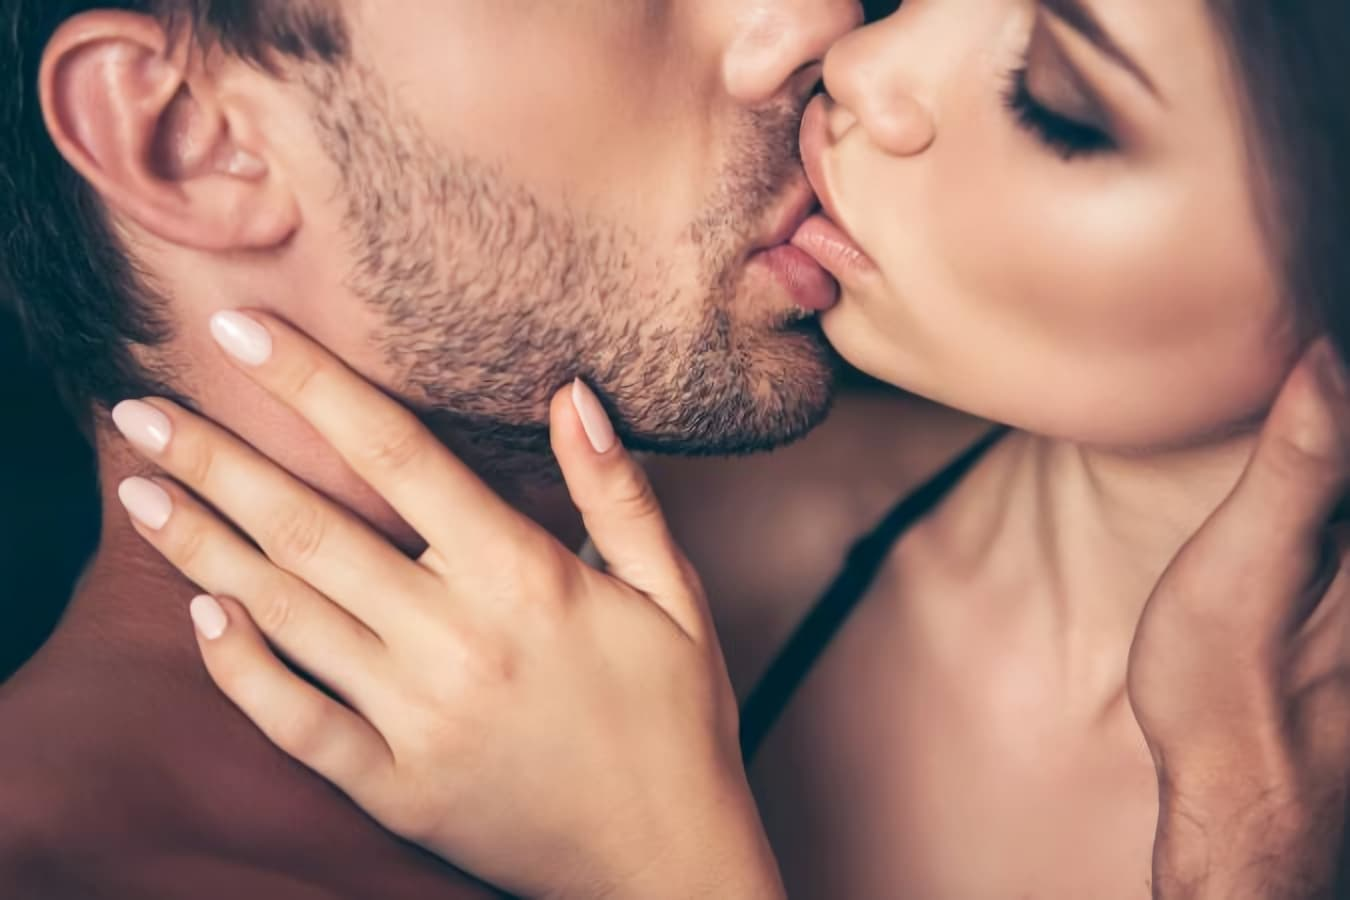 Chandigarh male escort and hotladies kissing each other